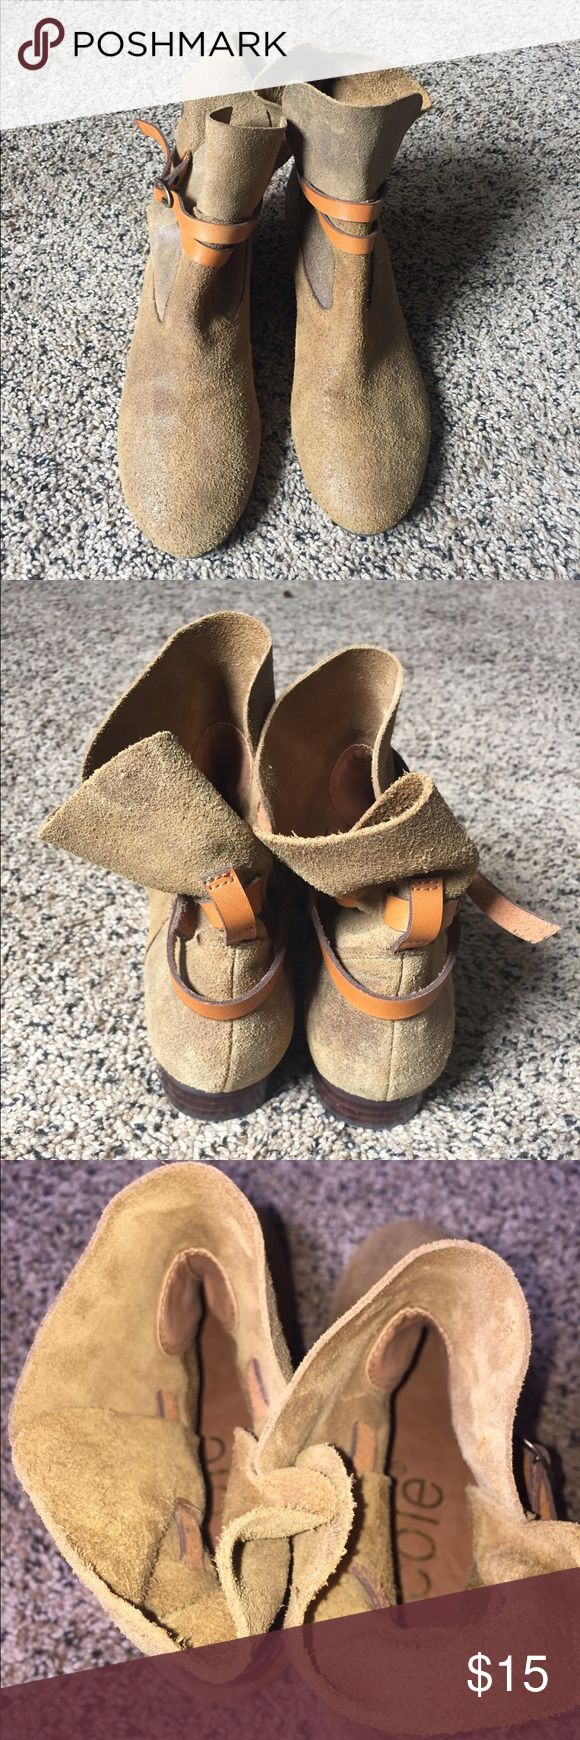 Nicole leather booties 6 1/2 Very comfortable, flat leather booties. Leather, is a camel/dry green color, with a adjustable tan leather belt strap. These booties are pre-loved but, in good condition. Shoes Ankle Boots & Booties